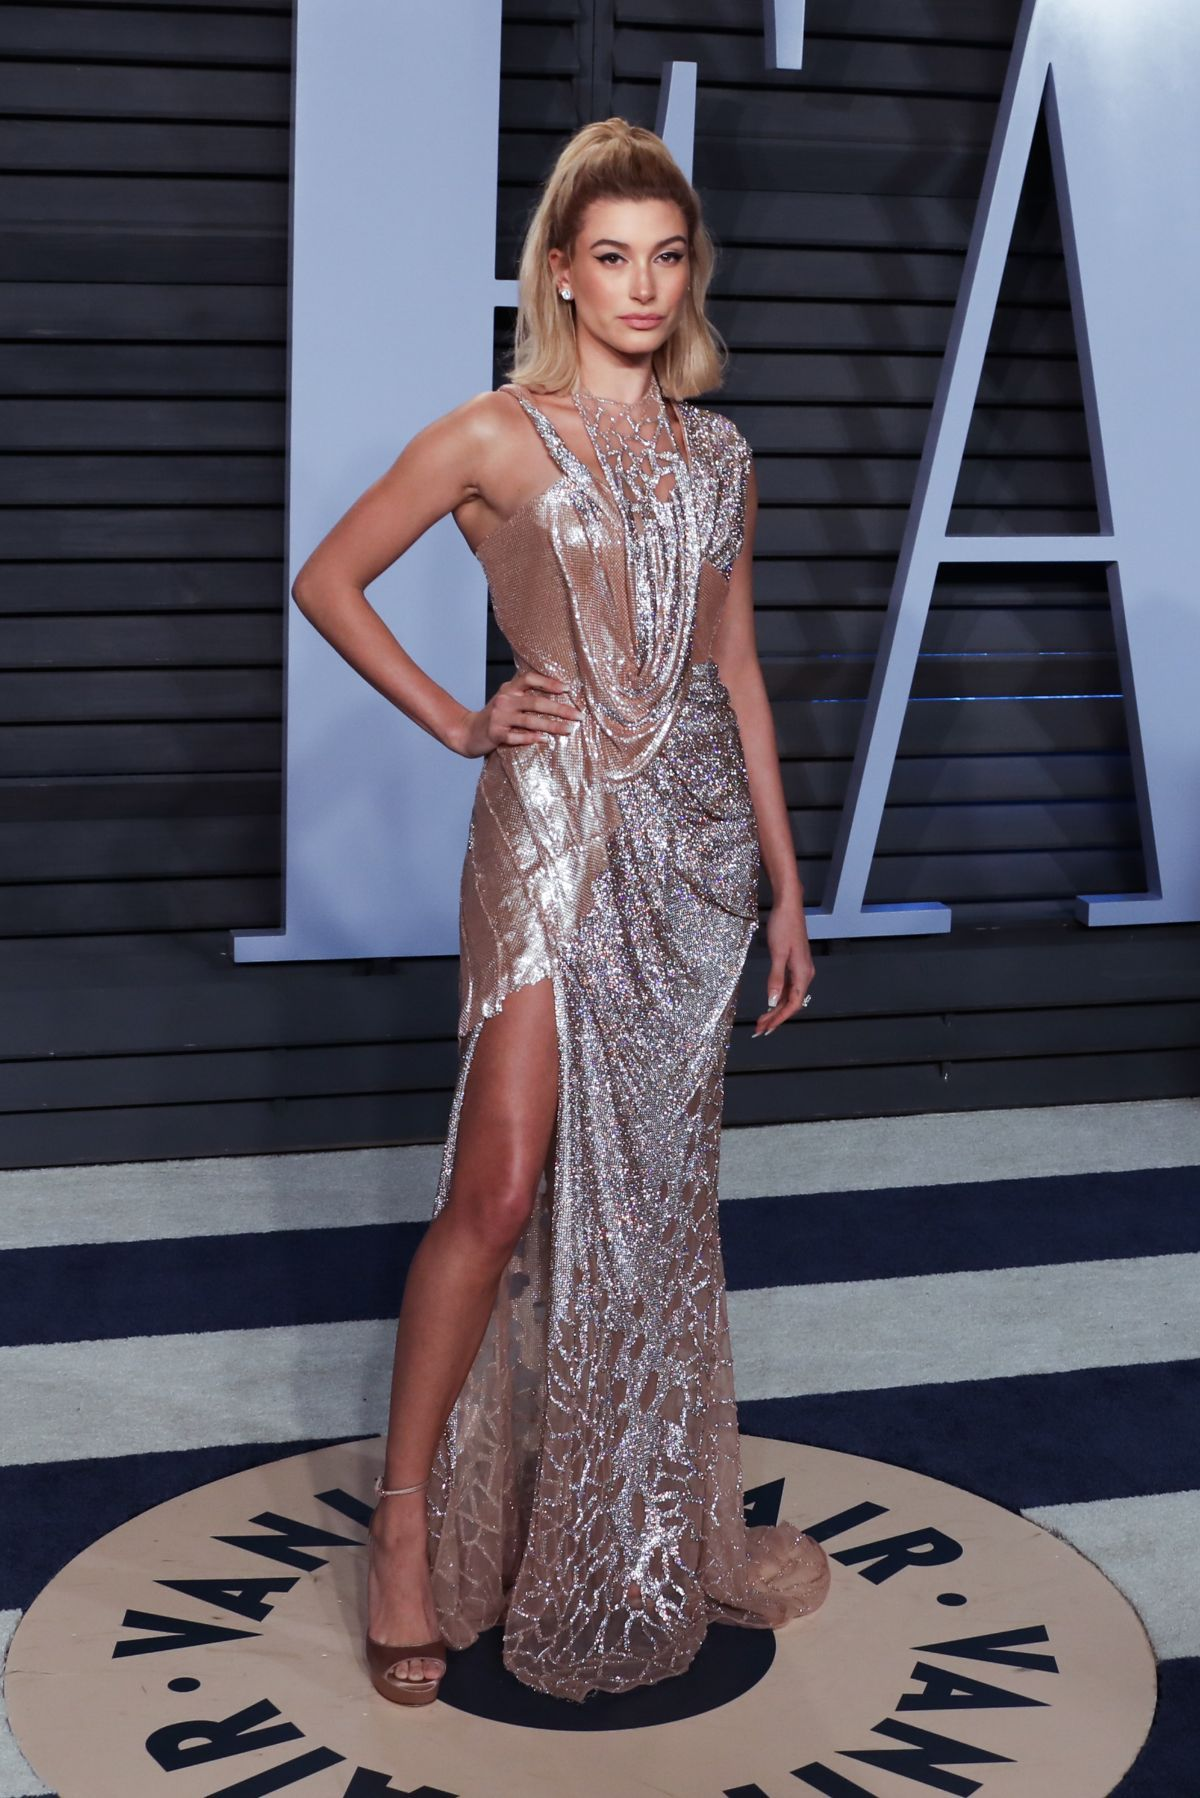 54ed5c42bc34 Hailey Baldwin at 2018 Vanity Fair Oscar Party in Beverly Hills 03/04/2018.  Celebrity Fashion and Style | Red Carpet | Glamour